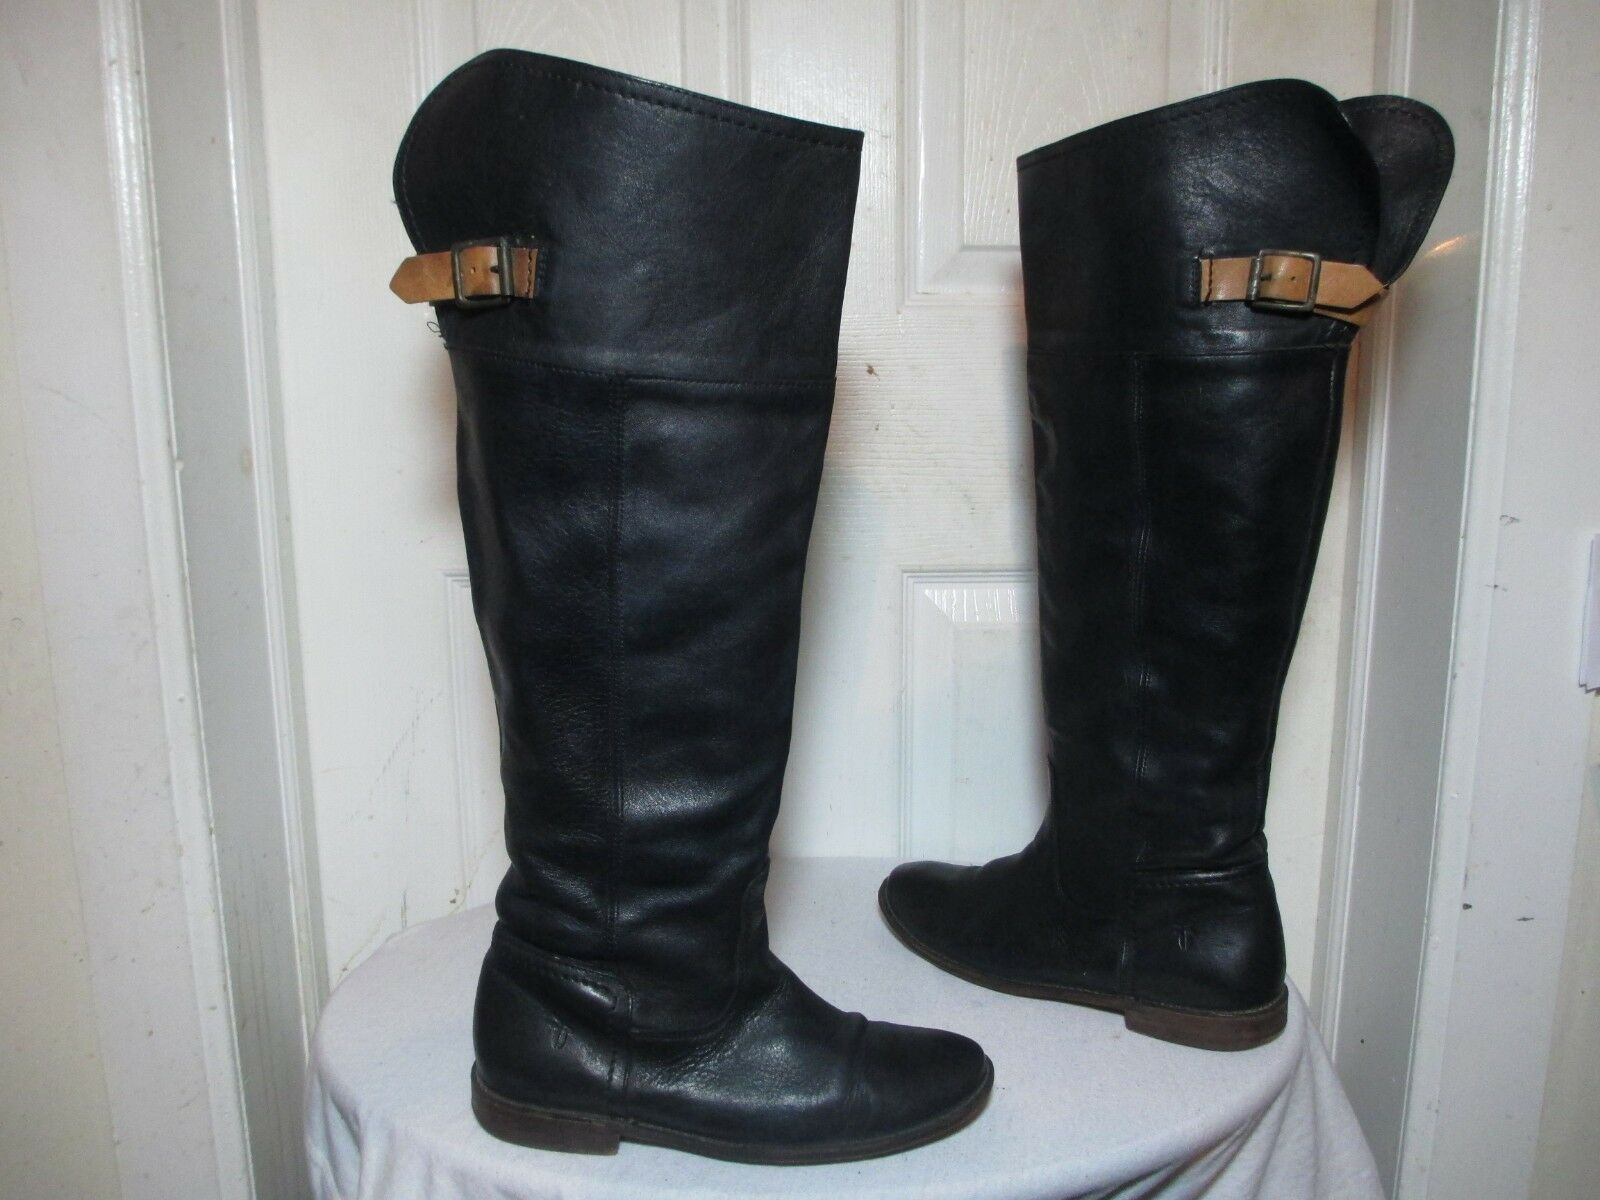 ultimi stili FRYE PAIGE 77061 WO'S BLK BLK BLK LEATHER BUCKLED OVER THE KNEE TALL RIDING stivali US 7 B  a buon mercato